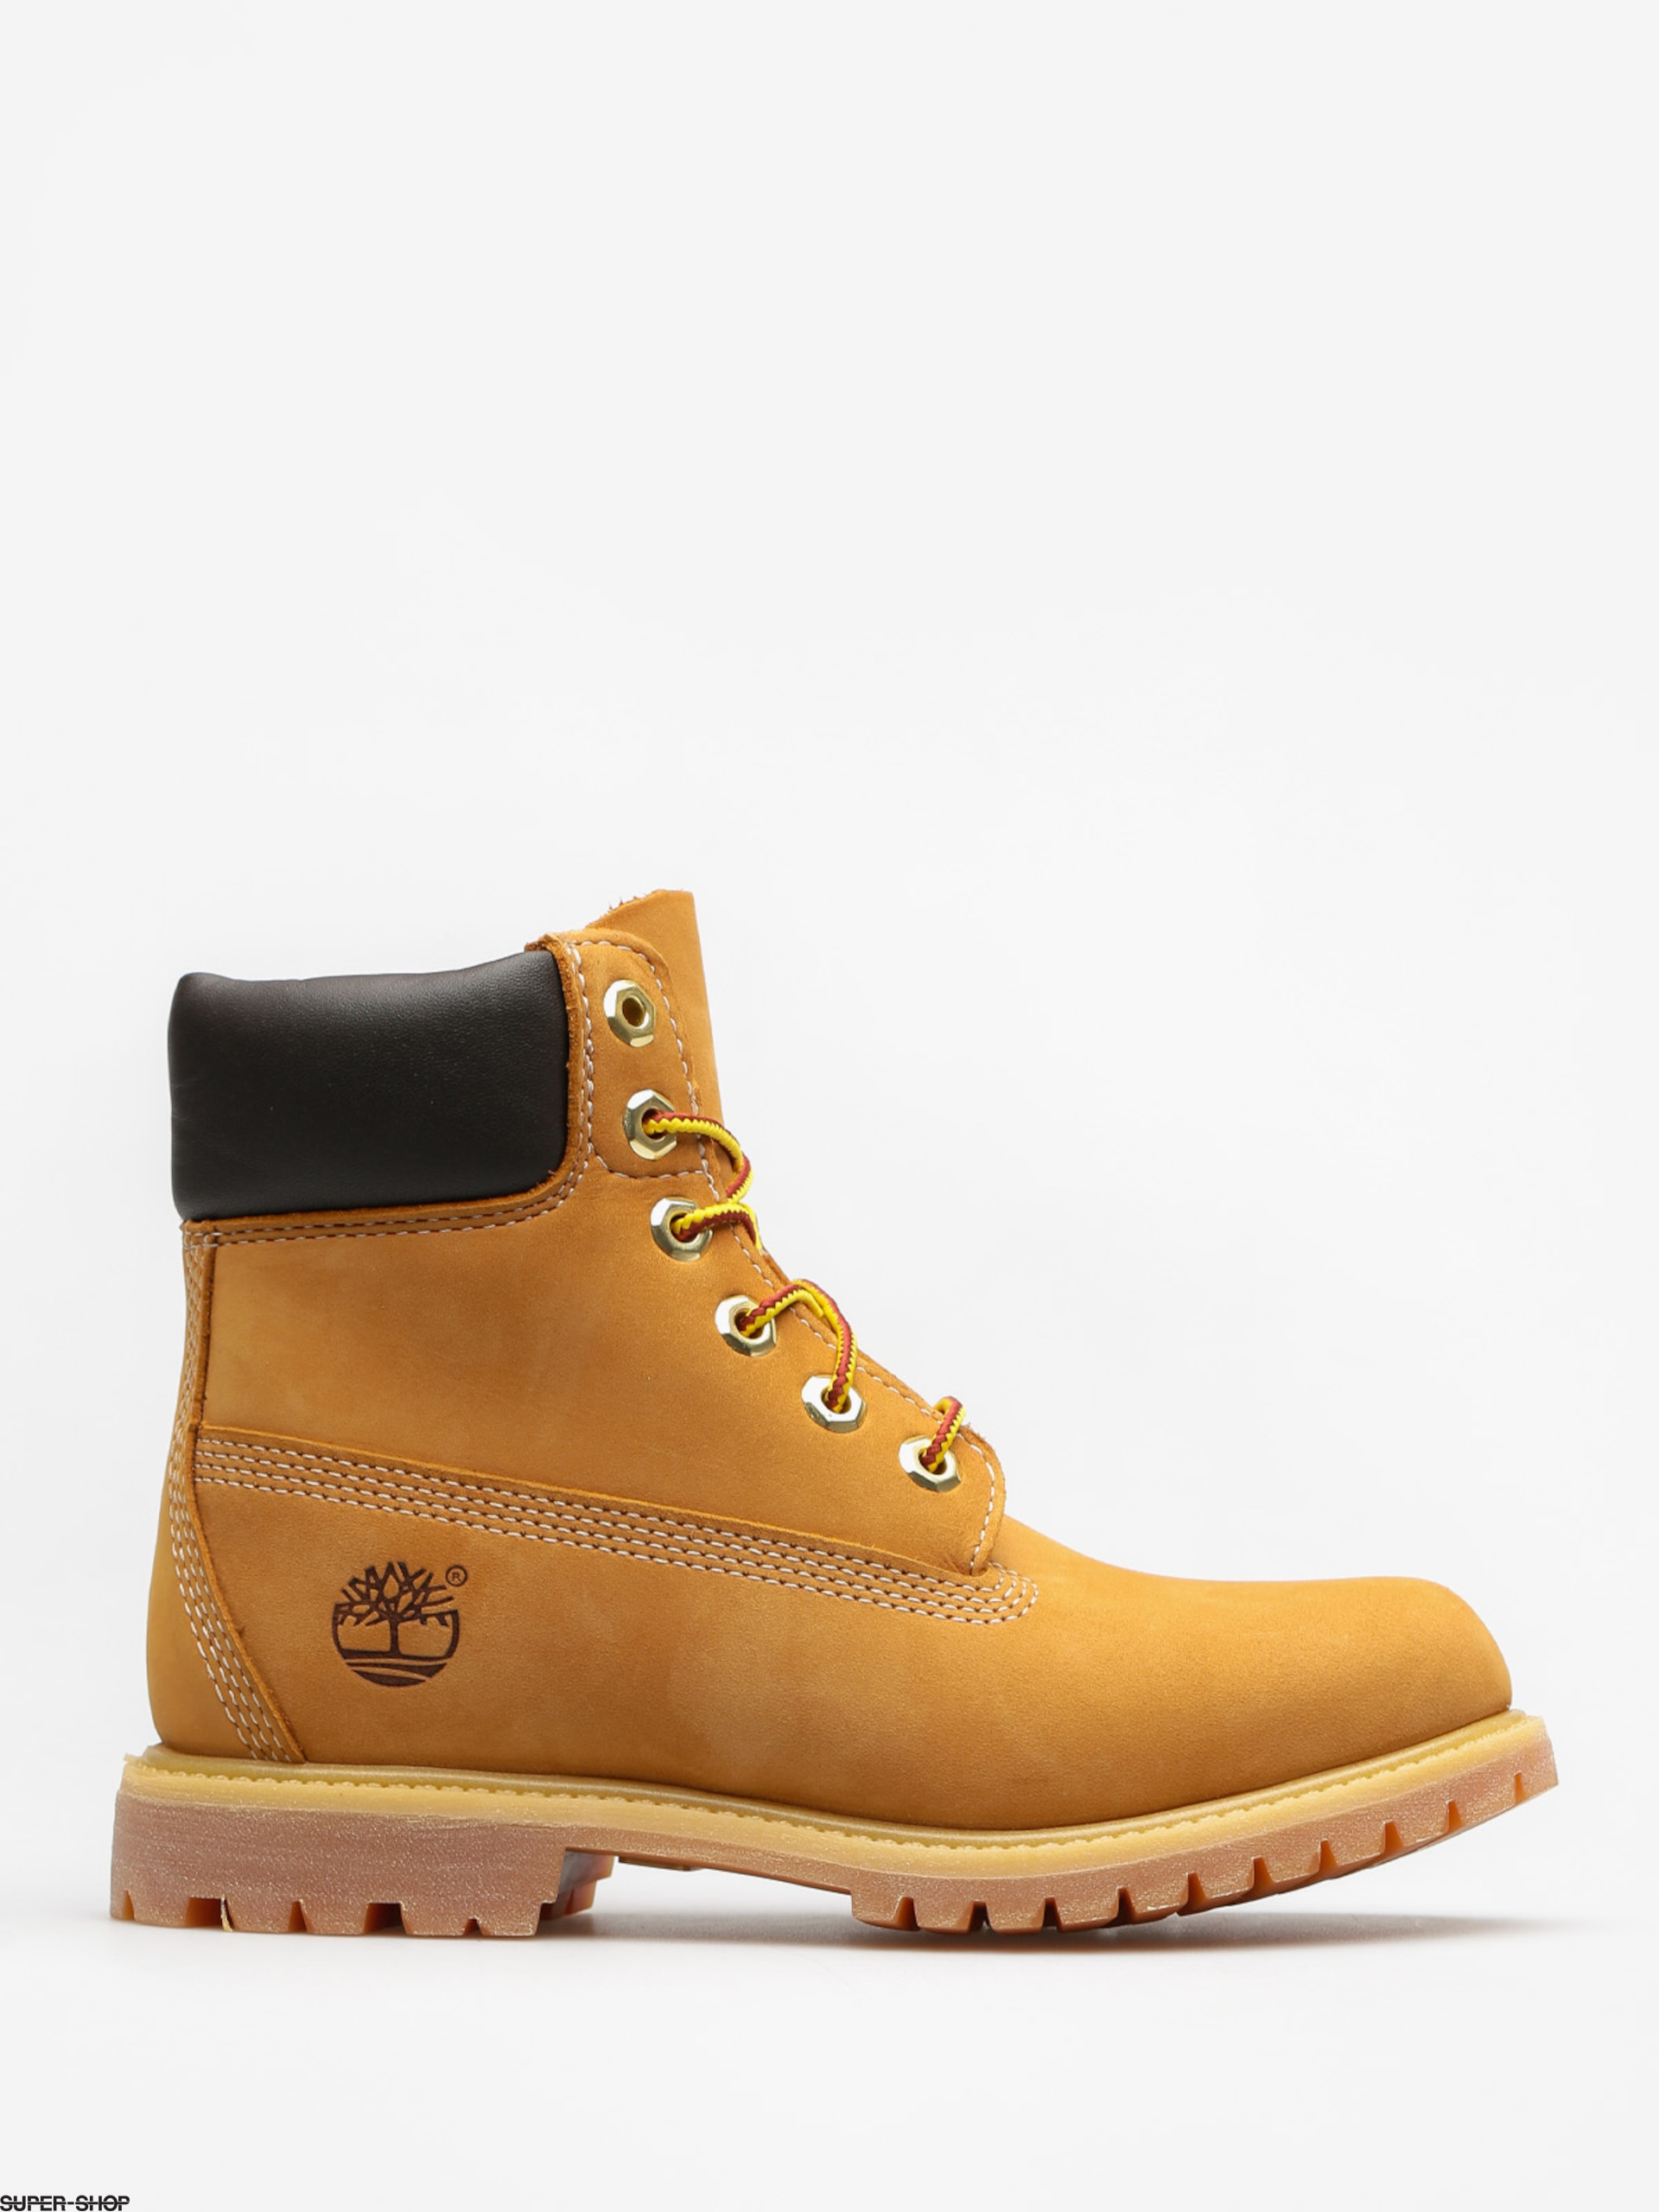 Timberland winter shoes 6 In Premium Wmn (wheat nb yell)